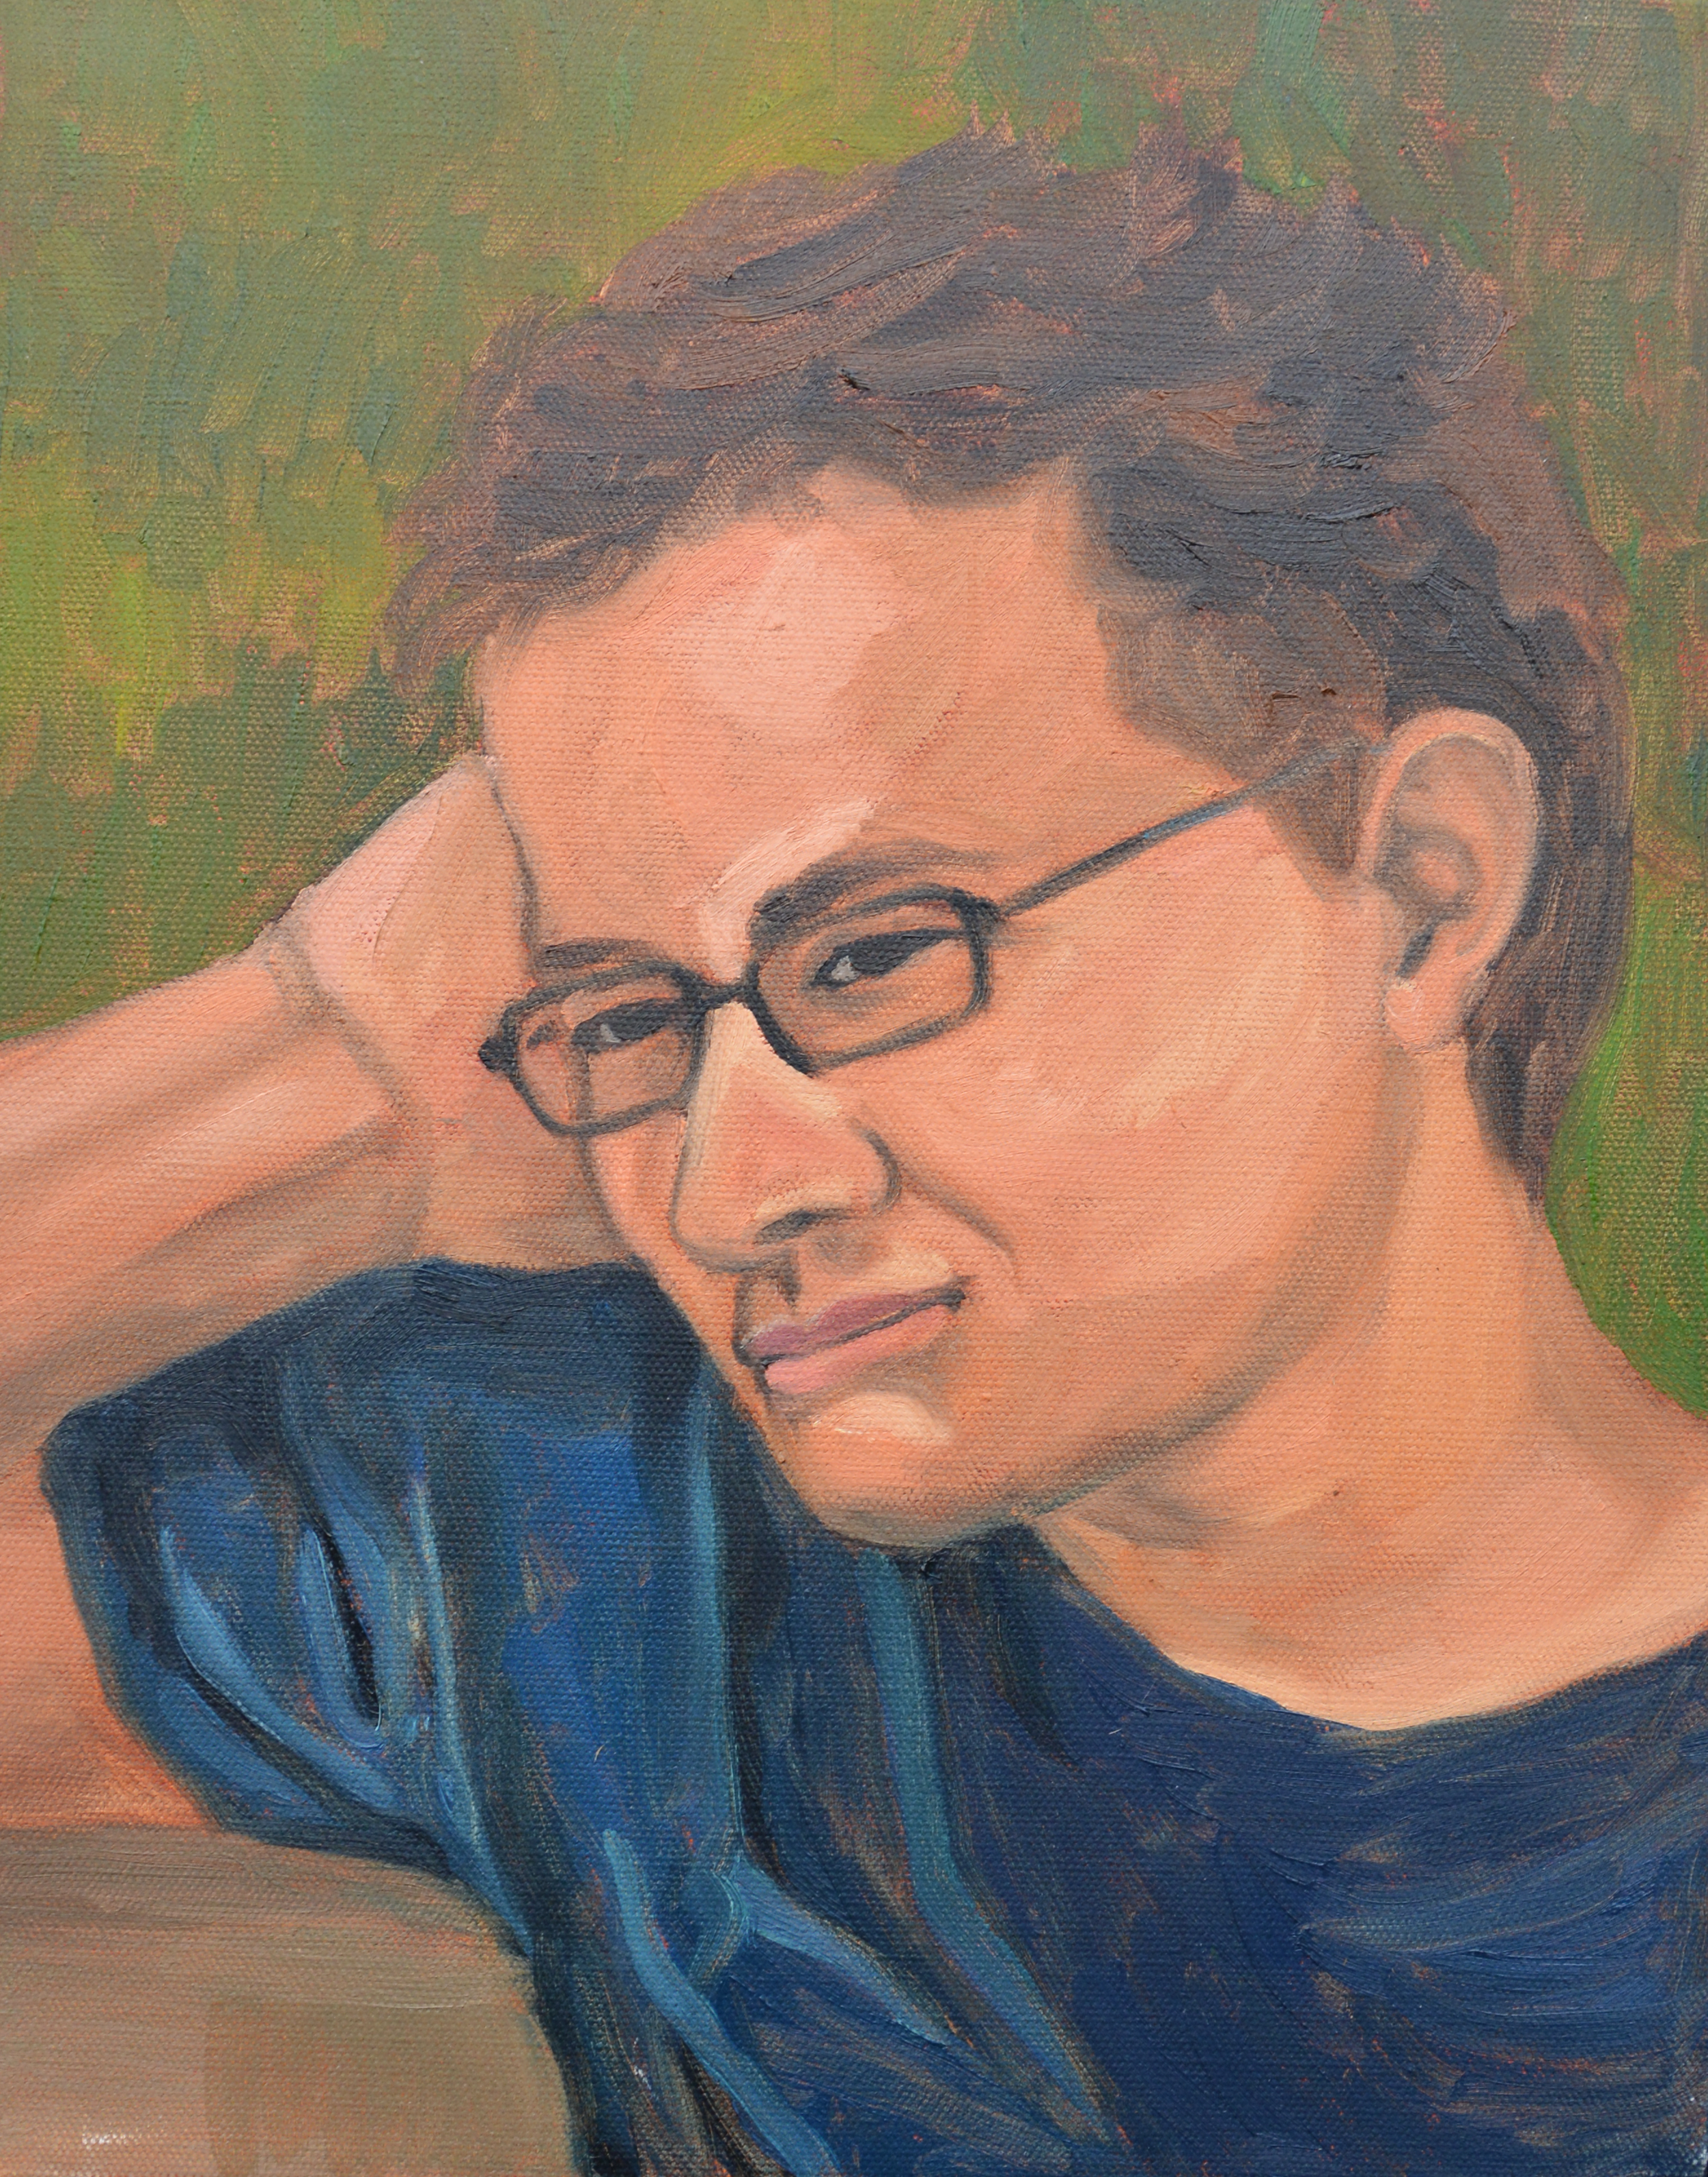 "Tim, 11x14"", oil on canvas, 2011"